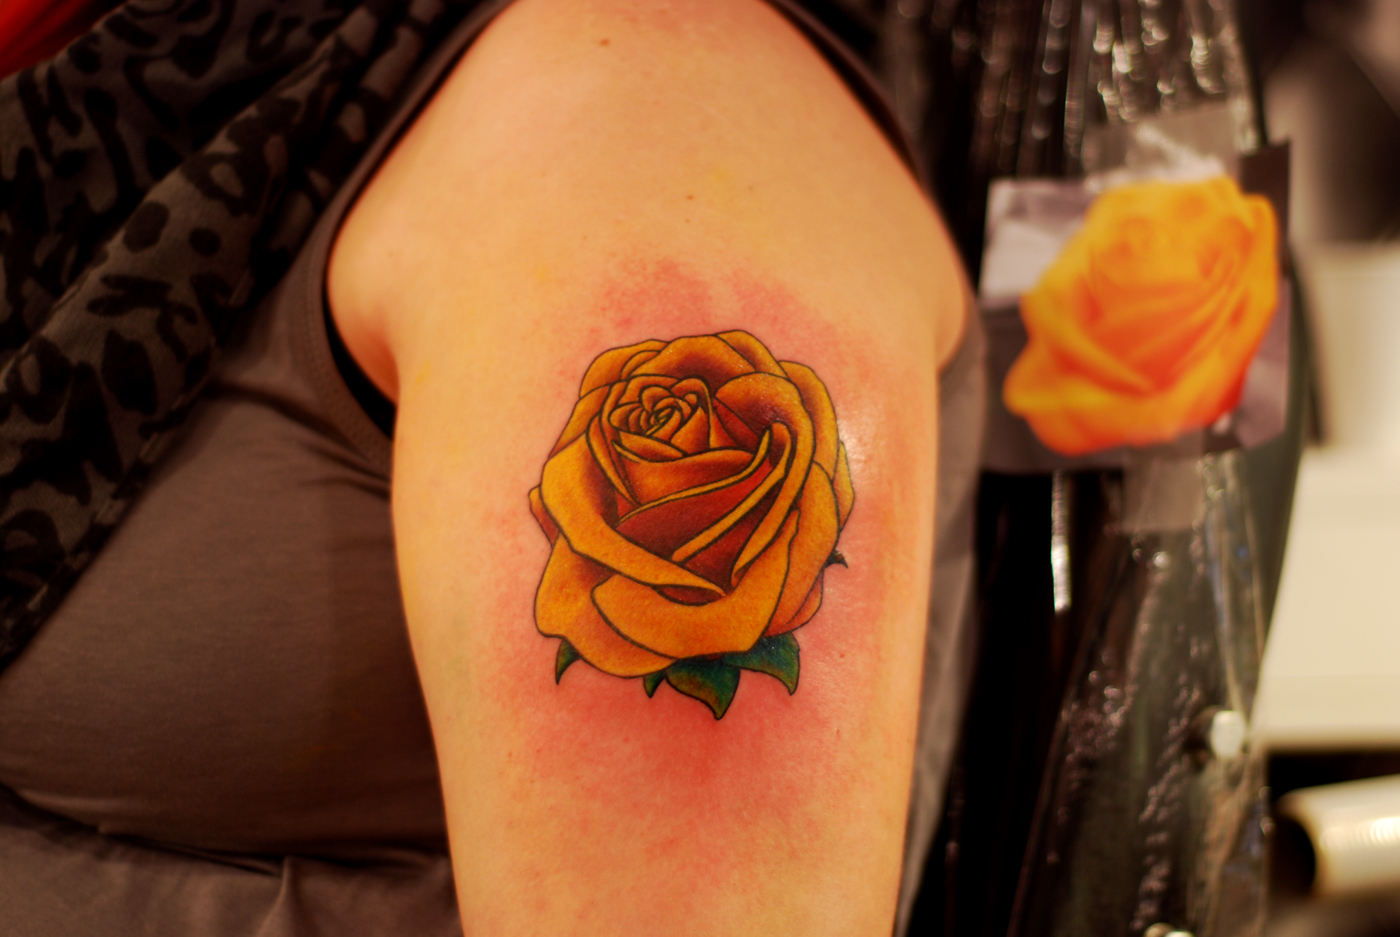 1887Tattoos: Yellow Rose Tattoos